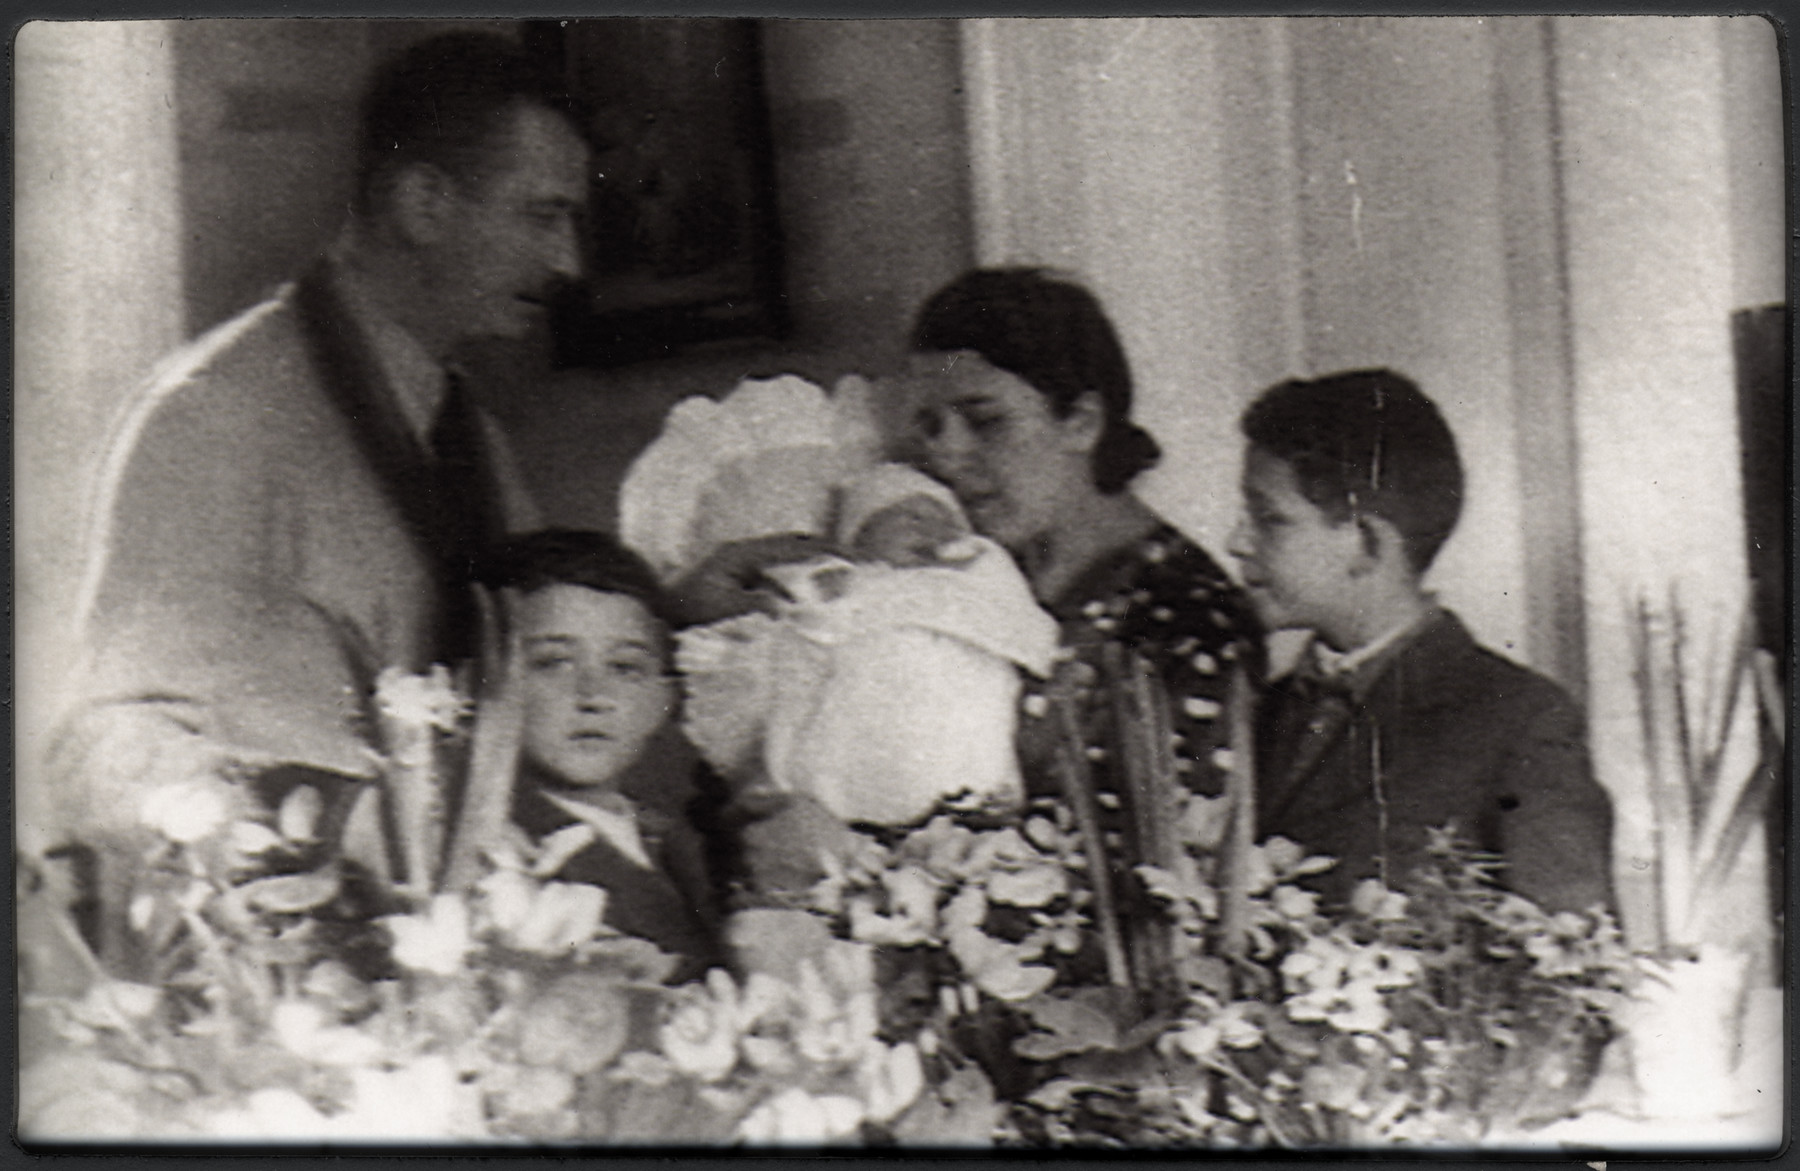 The Joszef family celebrates the birth of a baby girl.  Pictured from left to right are Marcell, Gheorghe, Agneta Flora, Irene and Andrei Joszef.